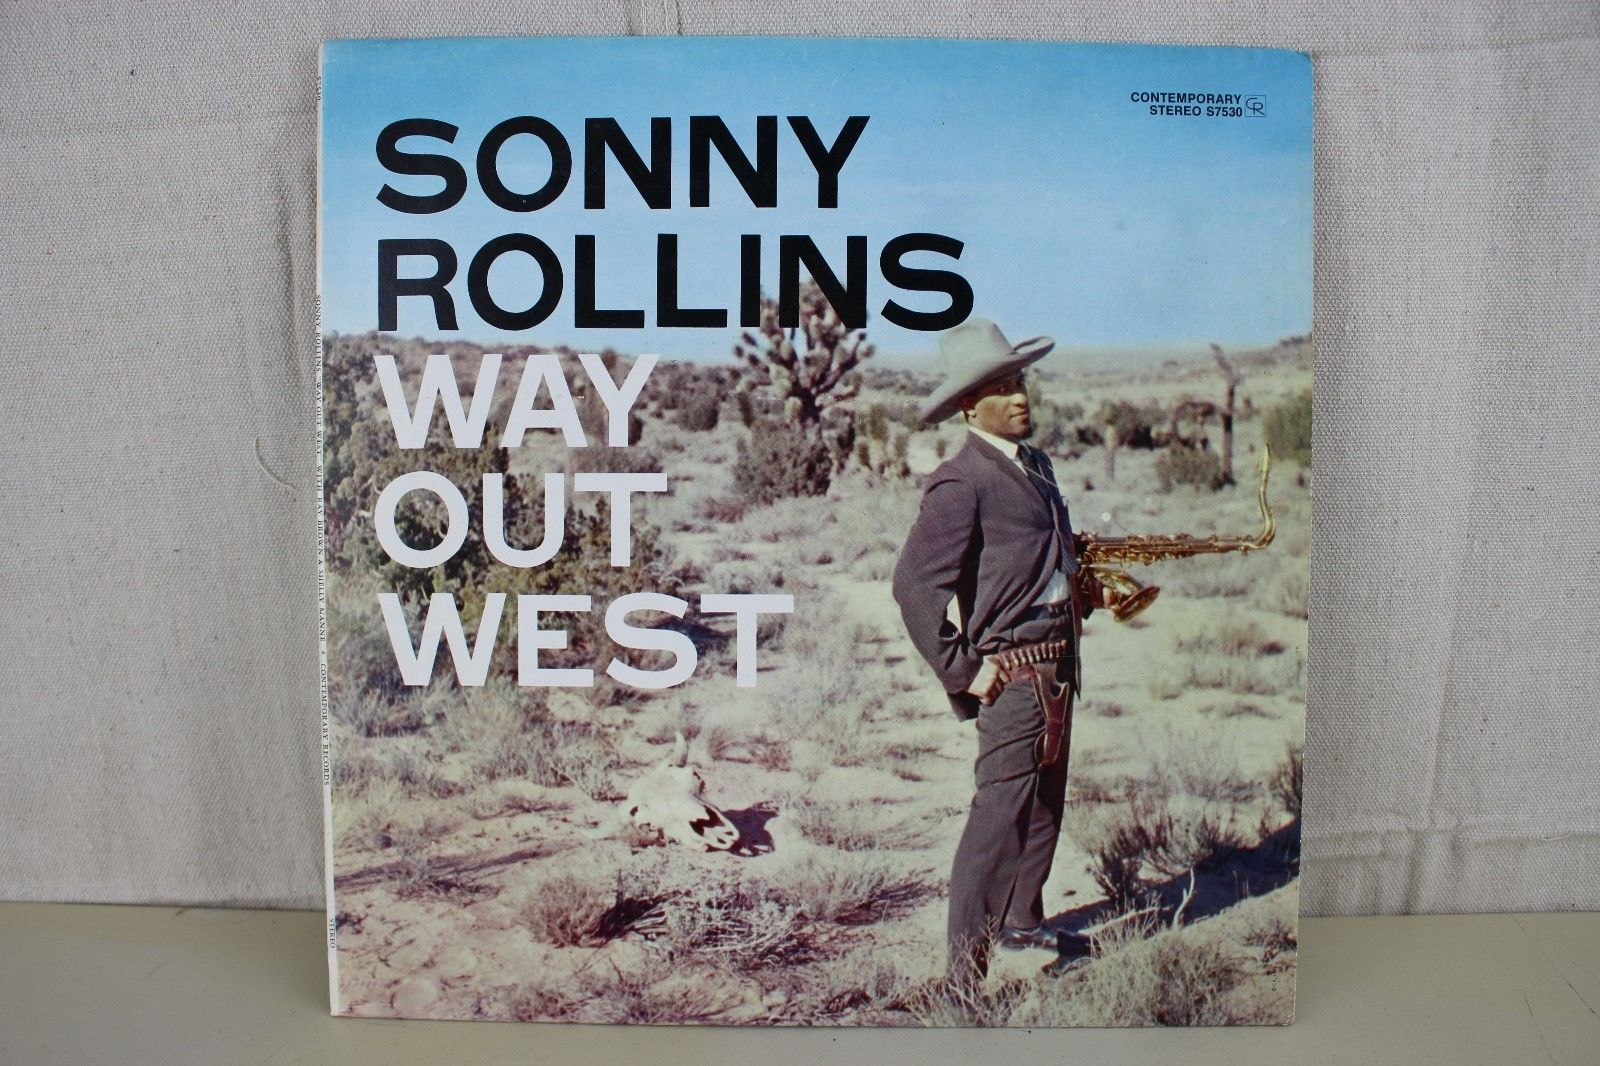 """Sonny Rollins """"Way Out West' Contemporary Stereo S7530 Jazz LP"""